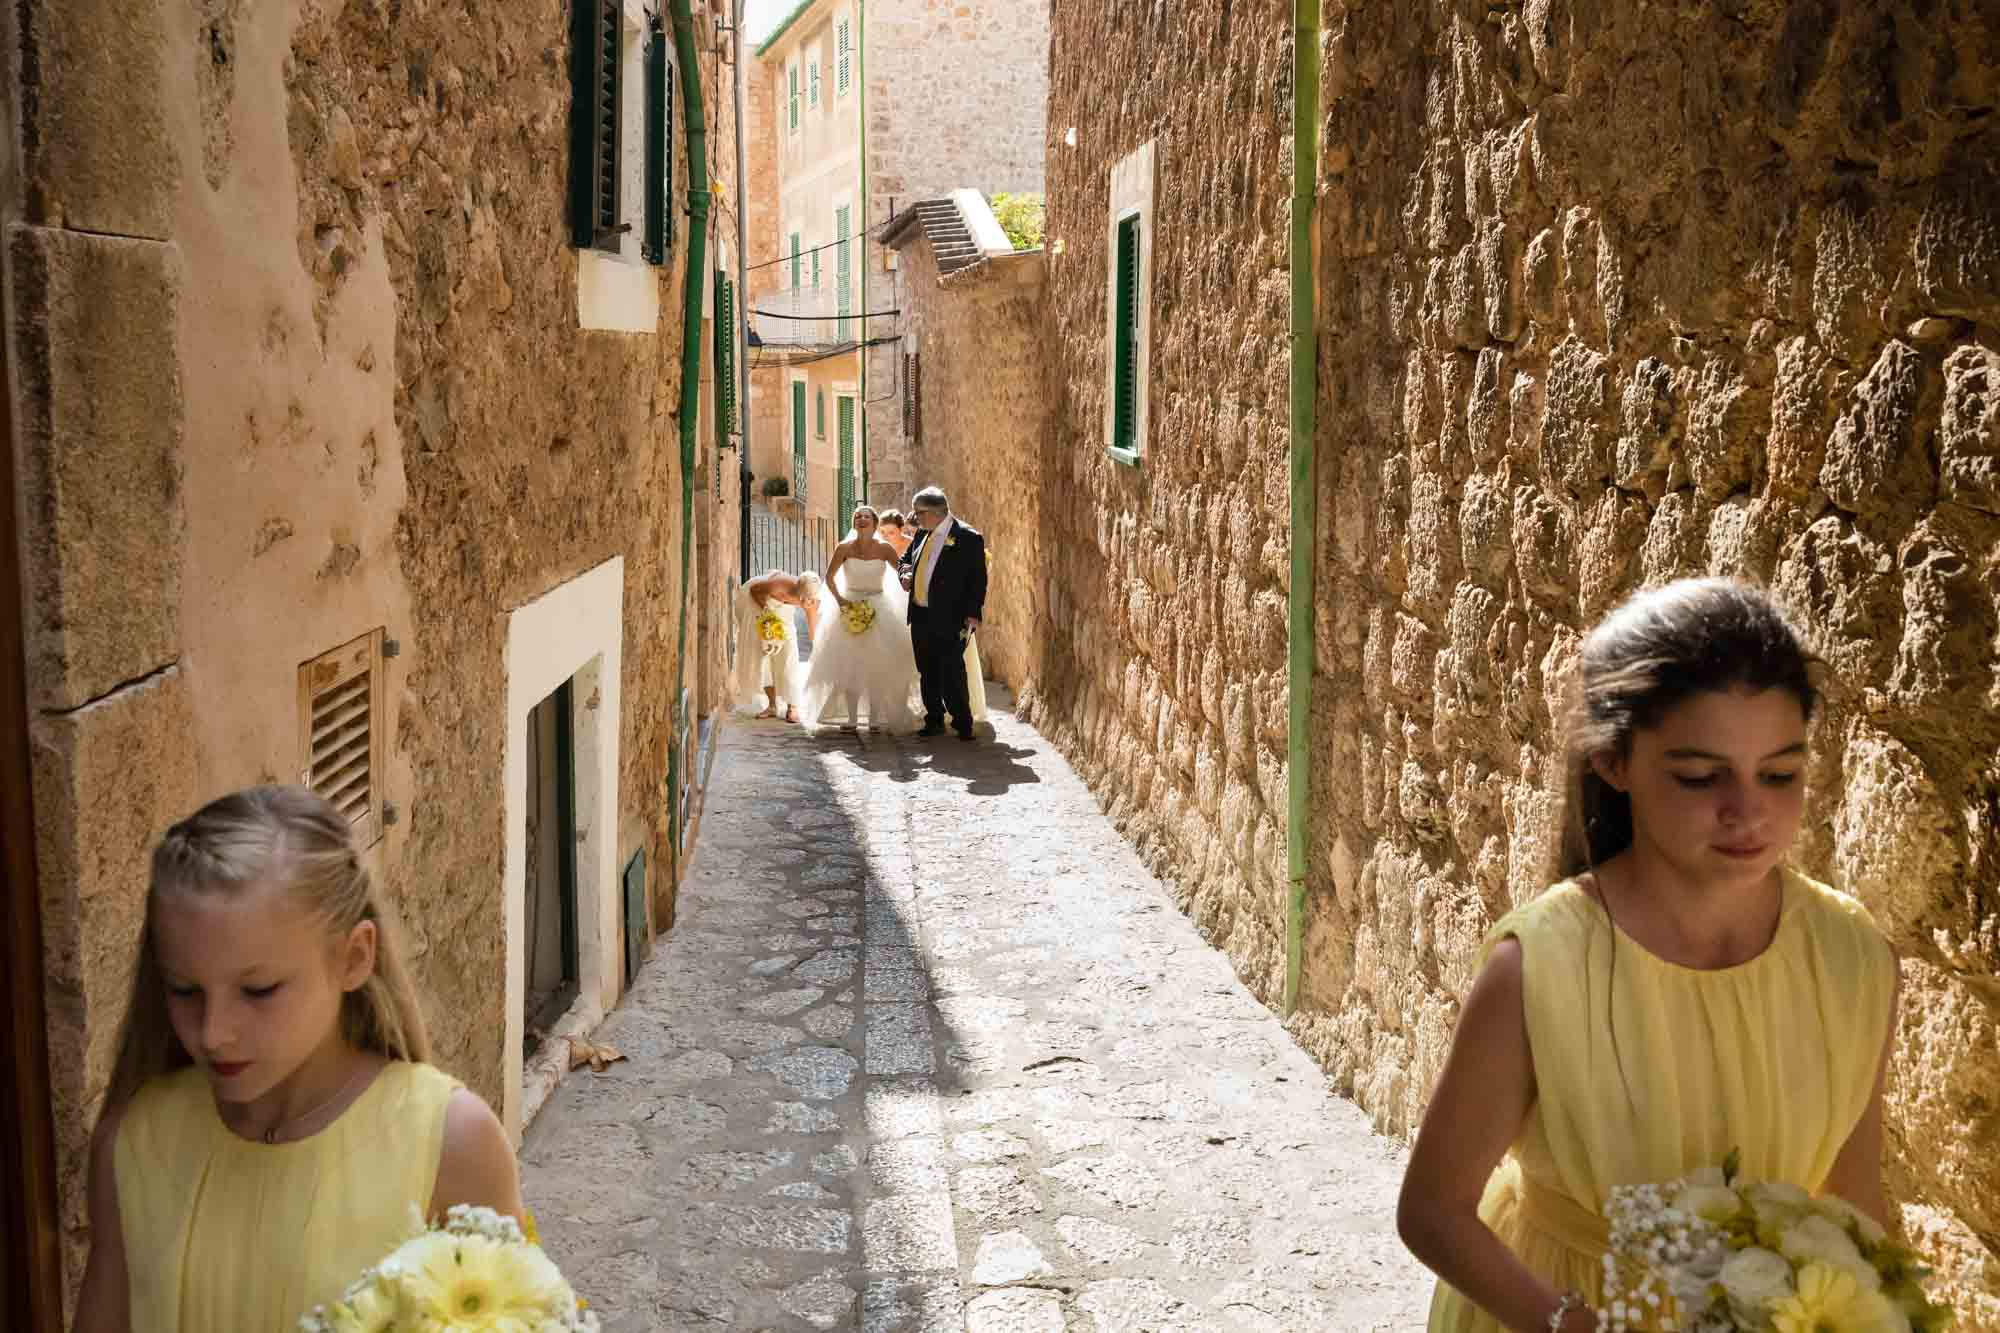 The bridal party walk along the narrow streets of Fornalutx, Mallorca